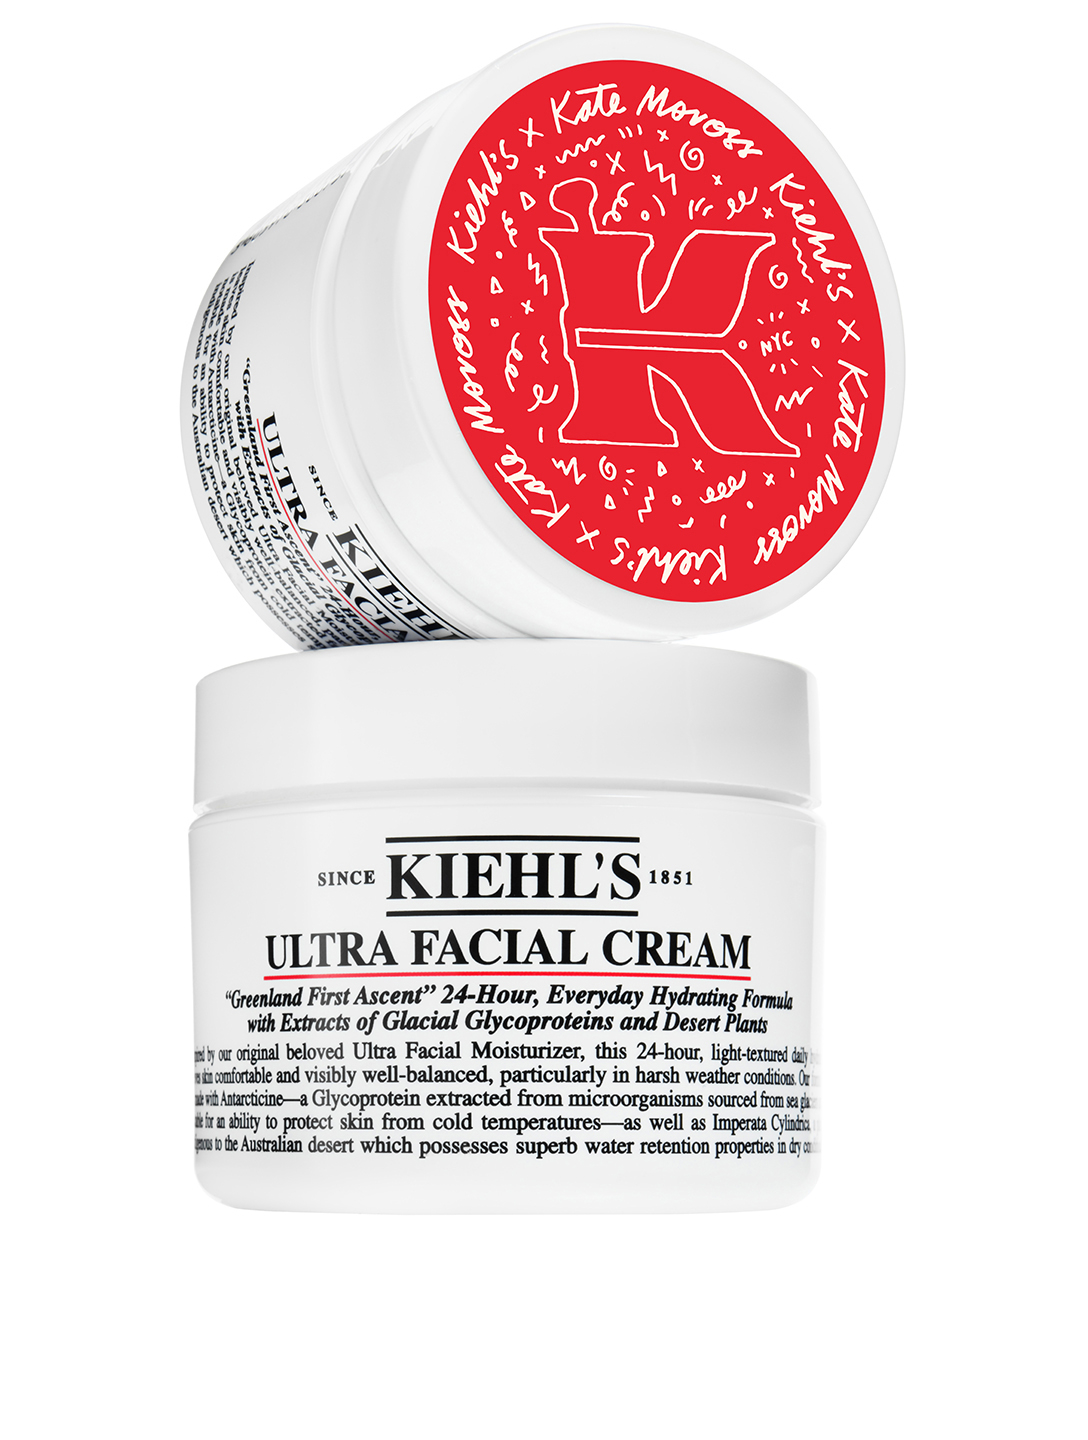 KIEHL'S Limited Edition Kate Moross Ultra Facial Cream Beauty